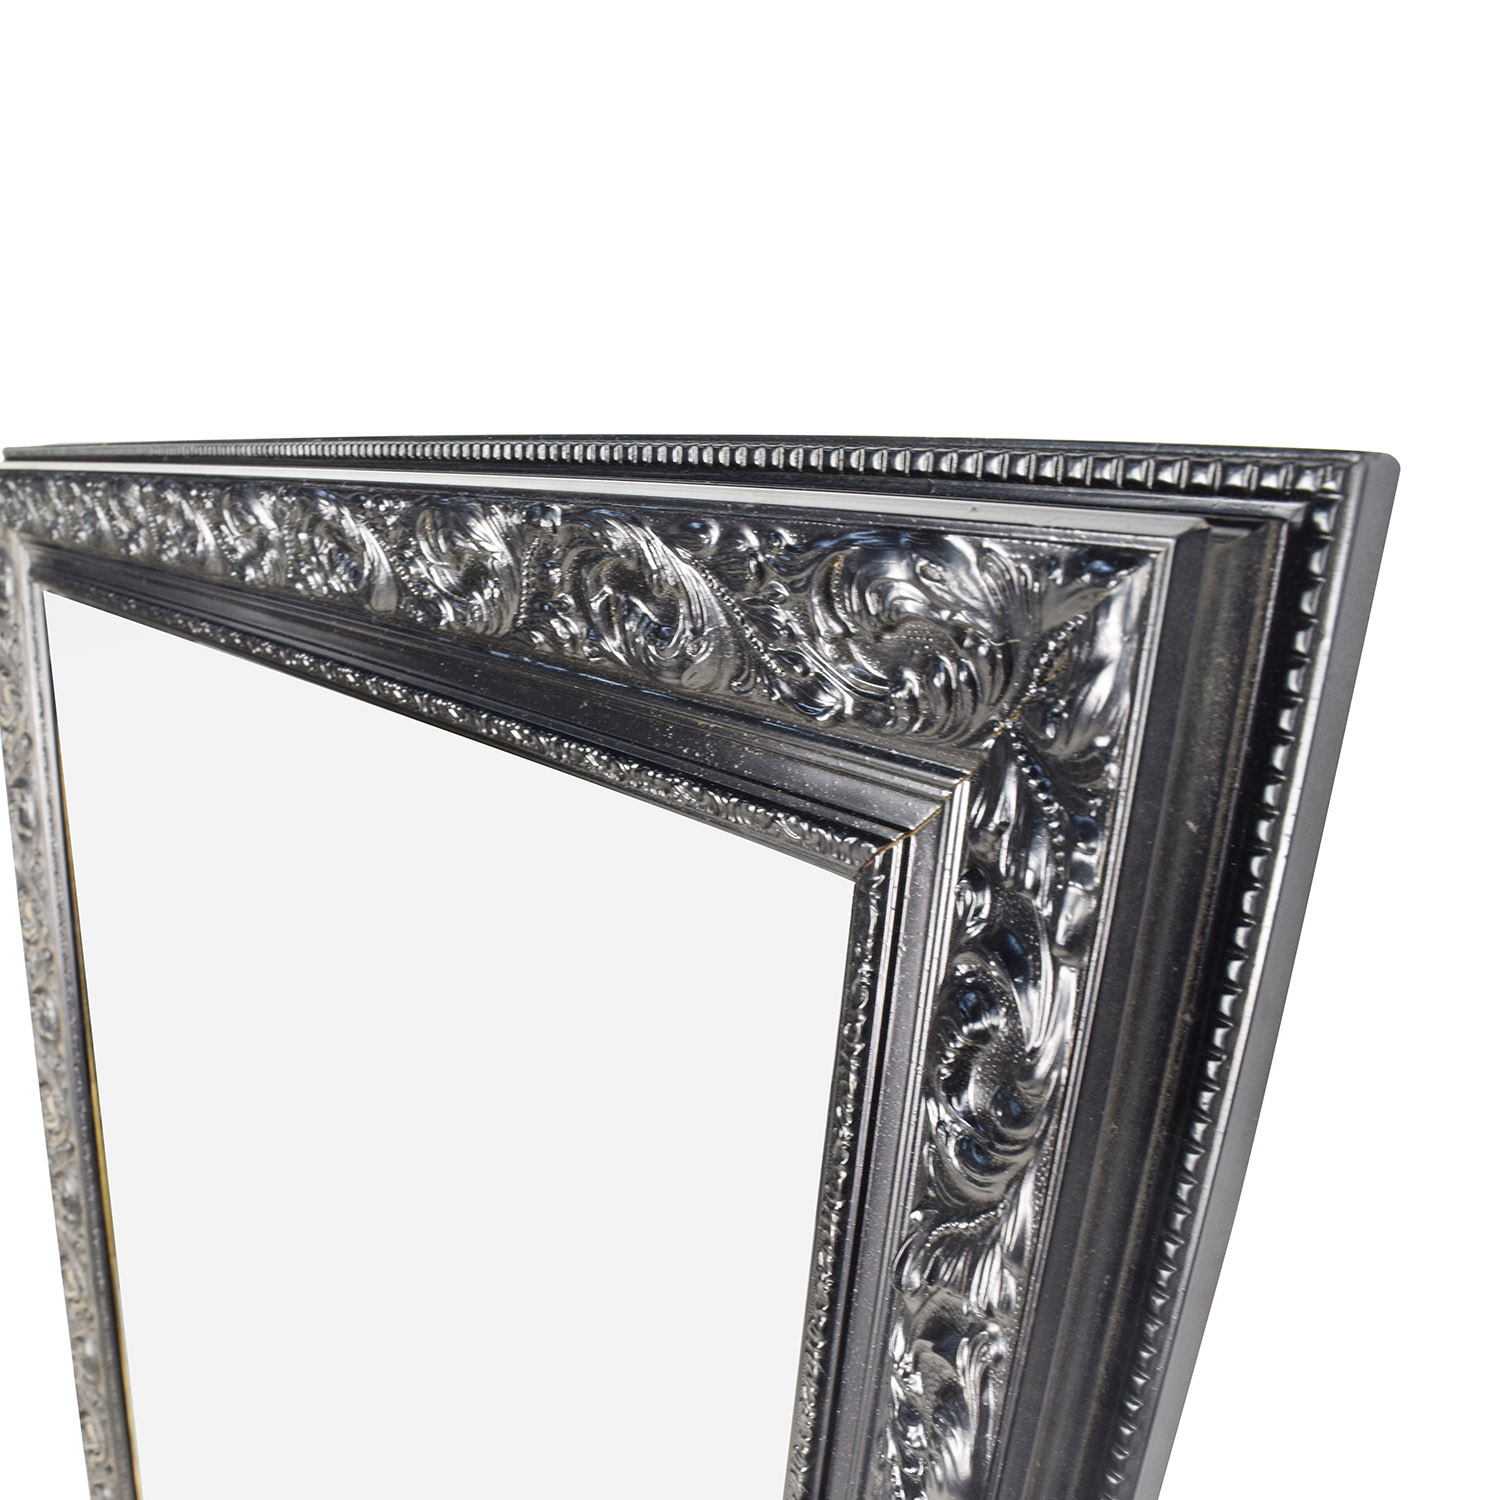 Antique Ornate Frame Mirror